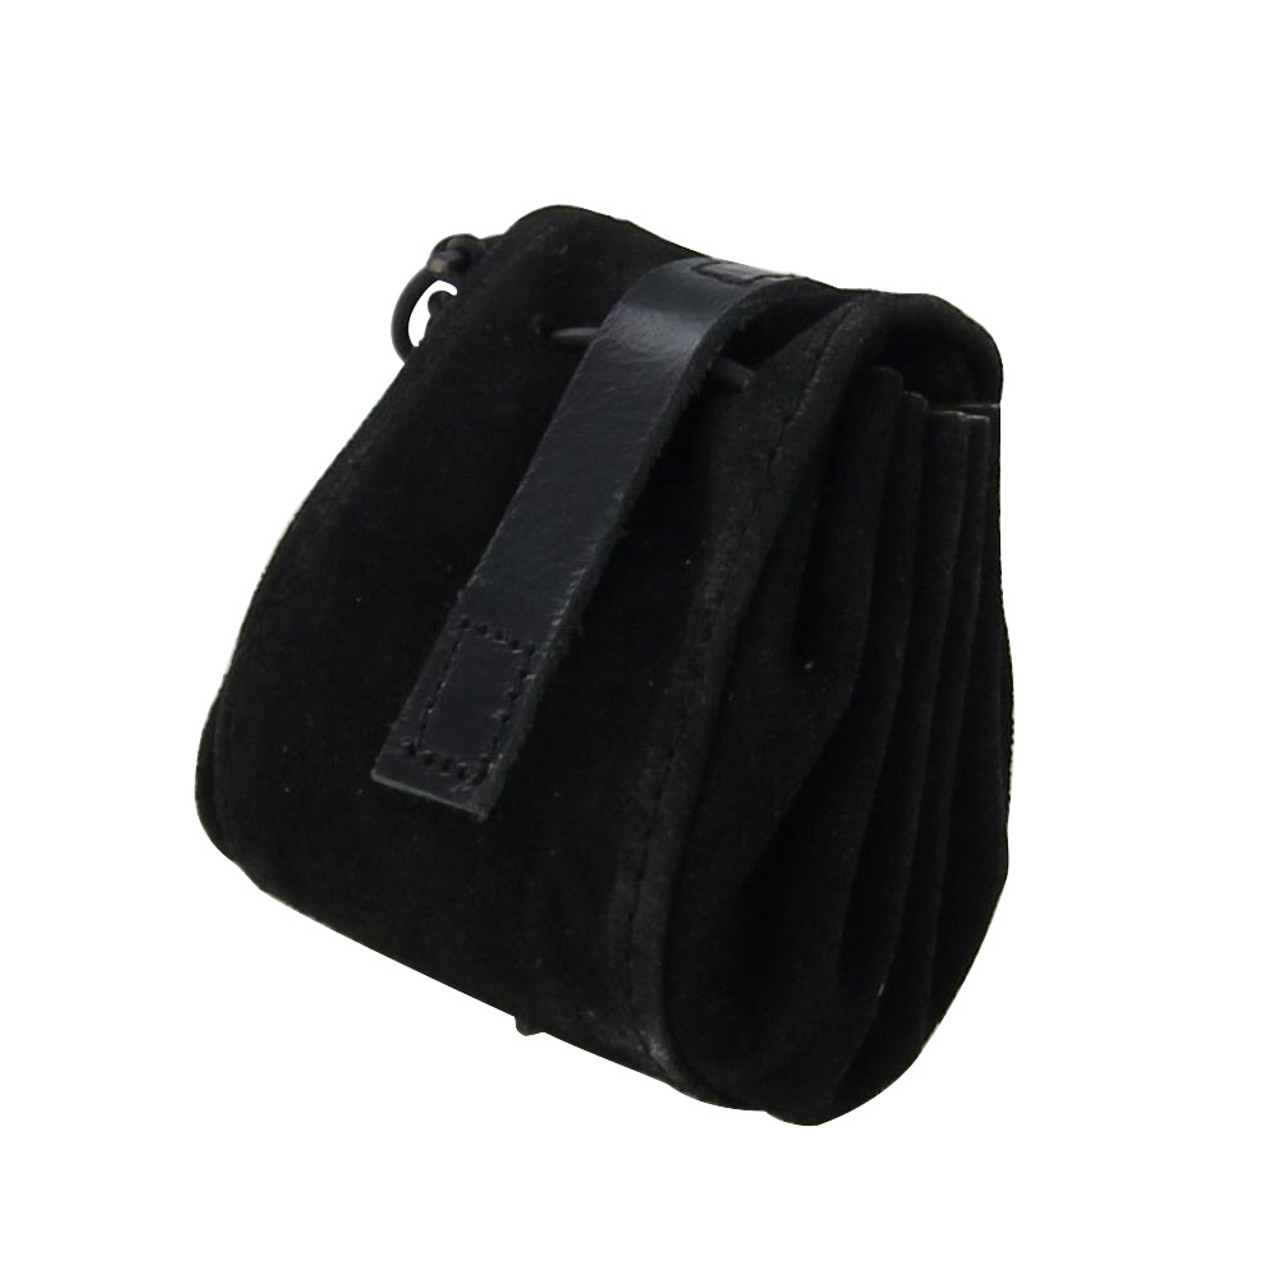 Pirates Treasure Keeper Black Suede Leather Pouch